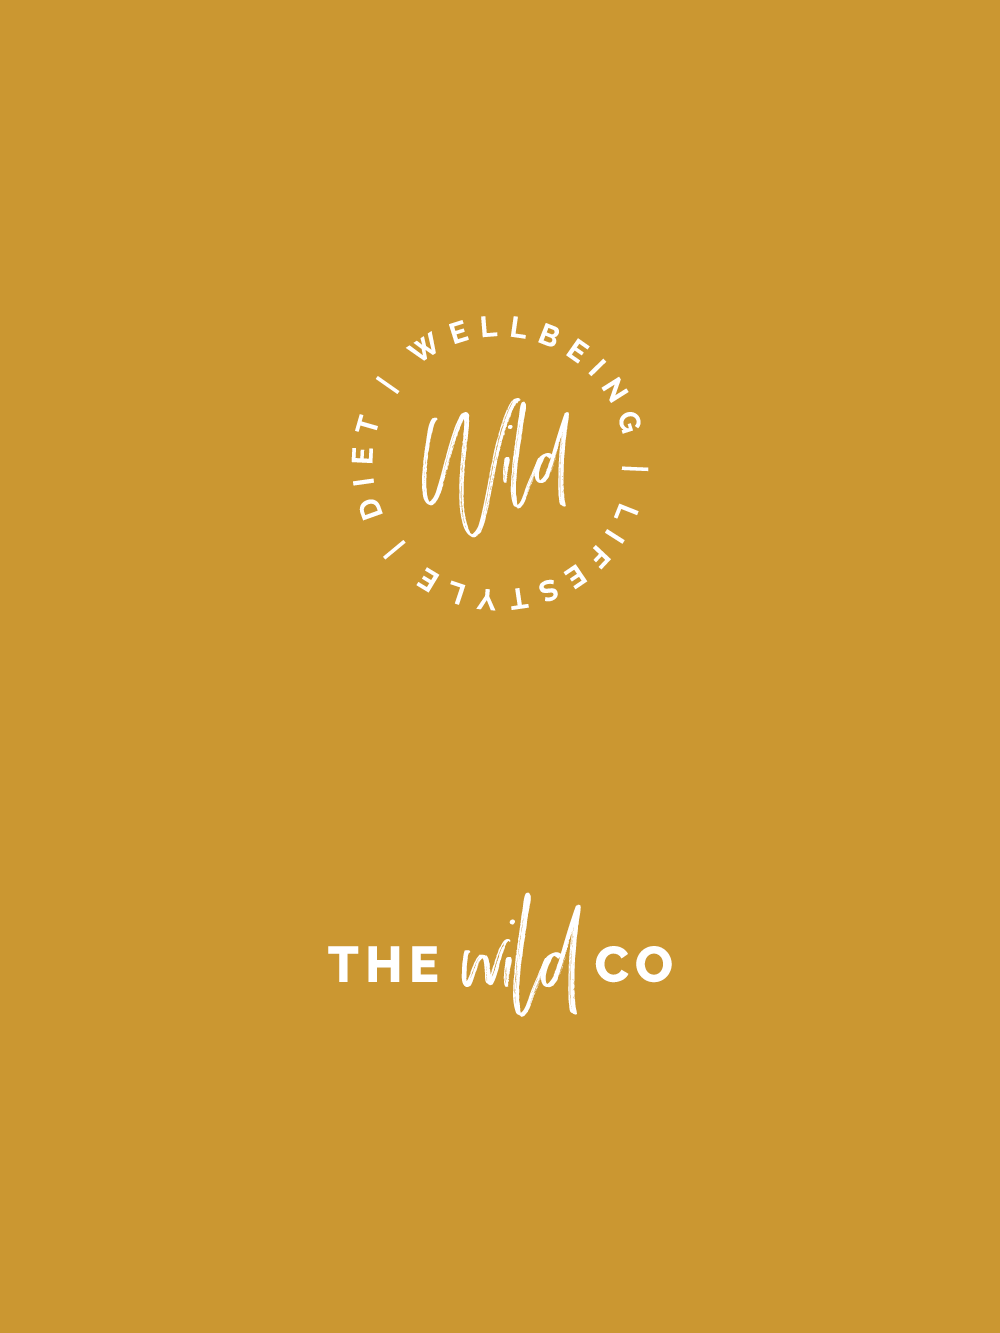 The_Wild_Company_Branding_02.png